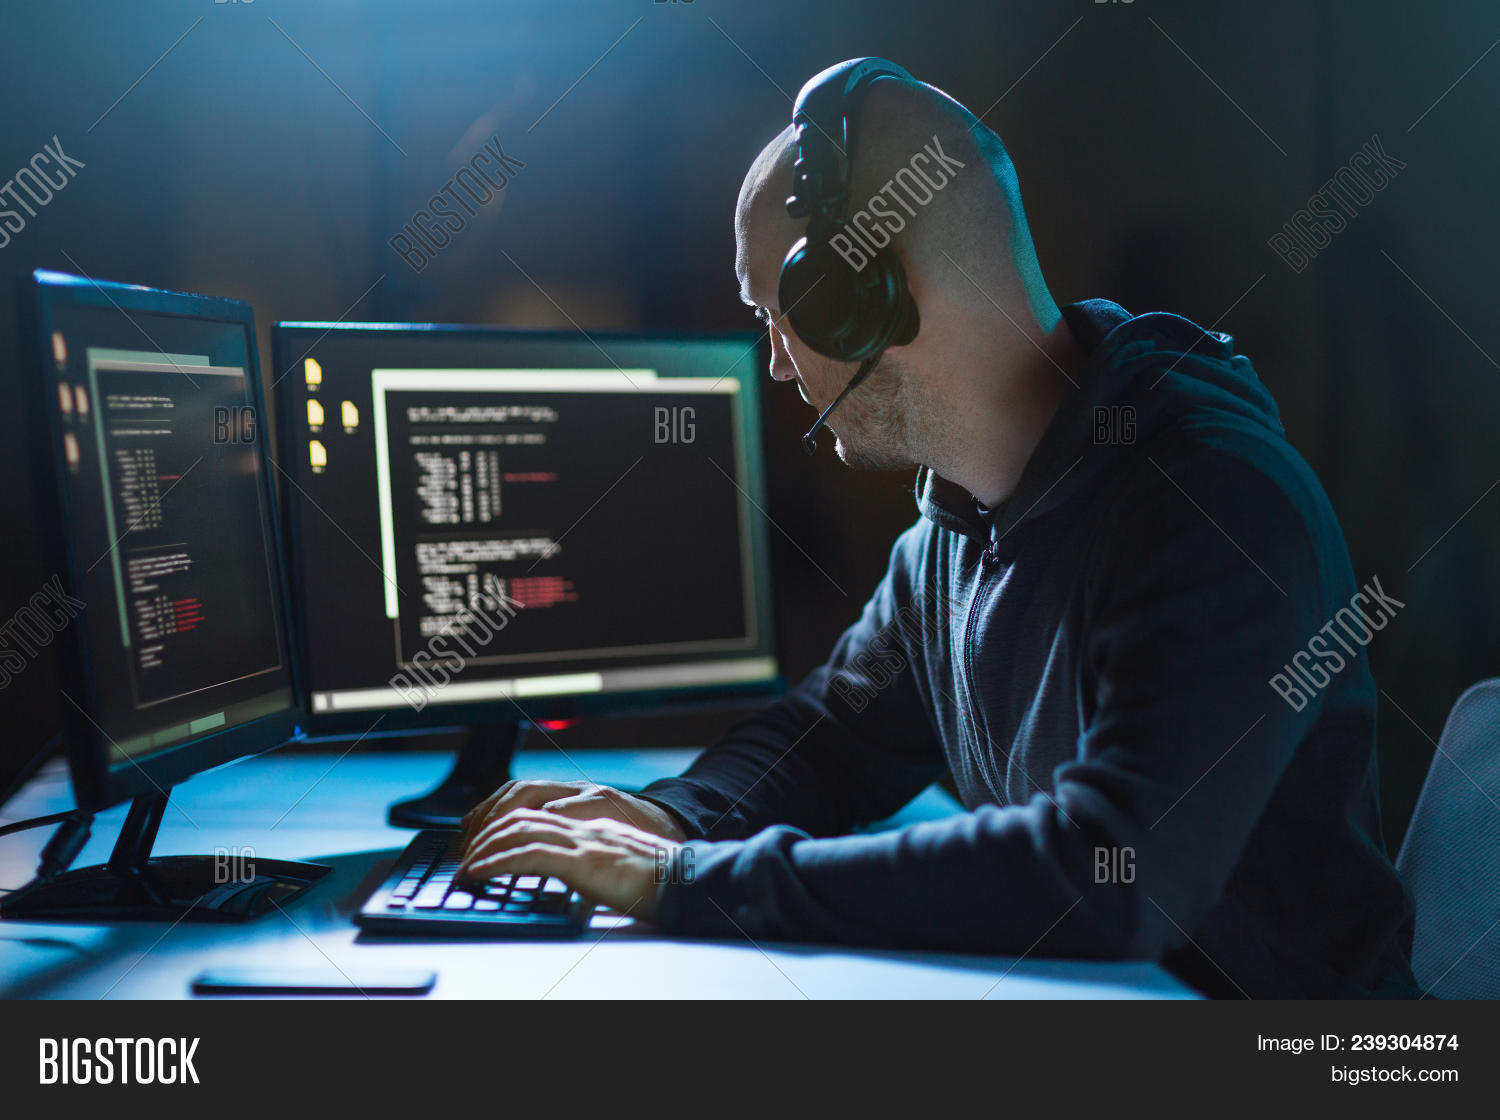 Cybercrime, Hacking Image & Photo (Free Trial) | Bigstock